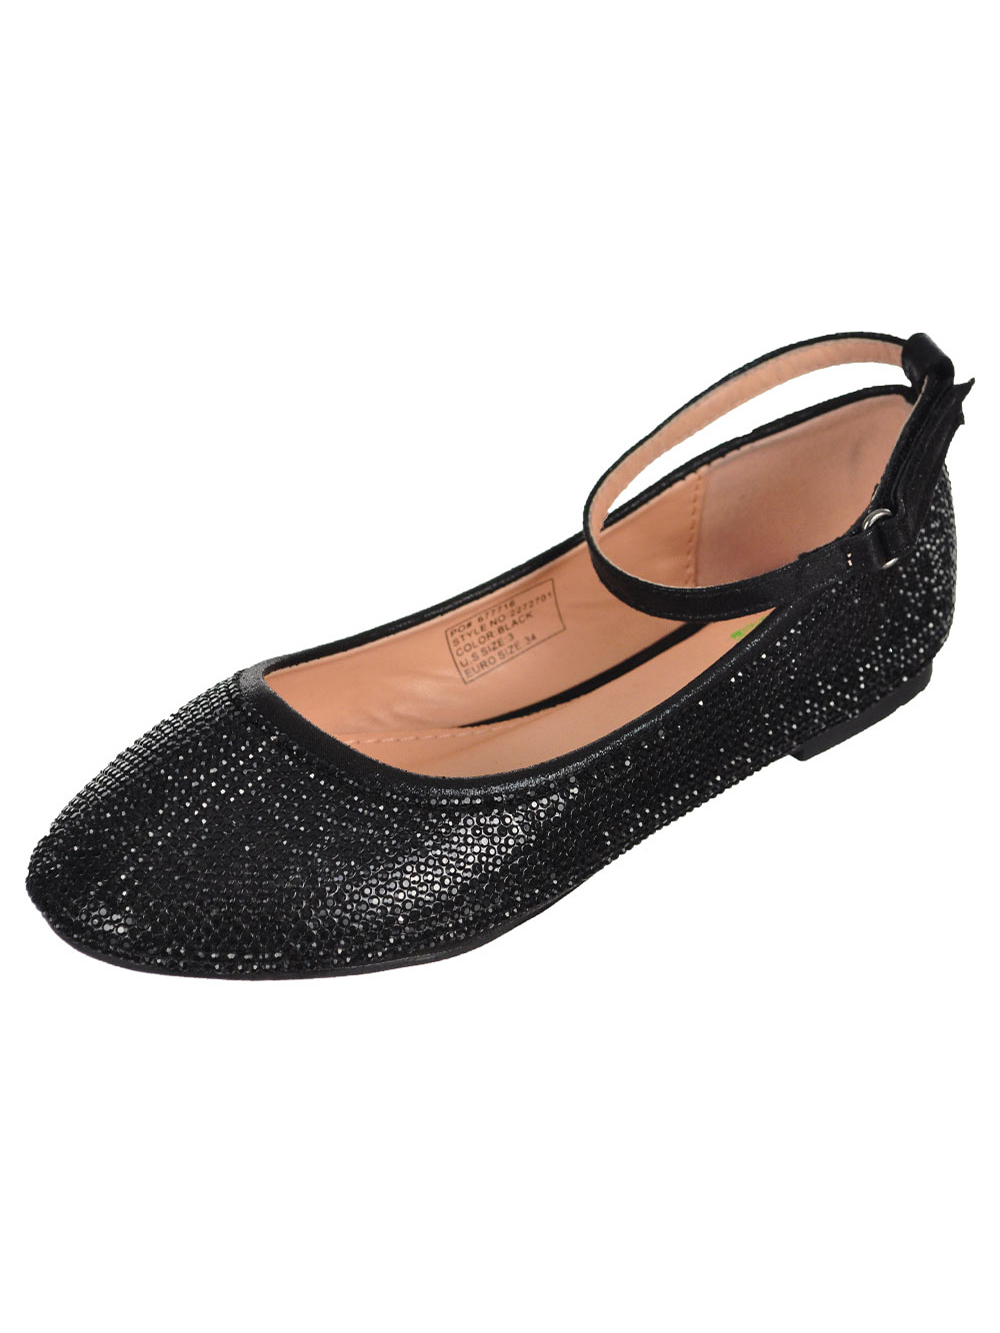 Size 2 Youth Dress Shoes for Girls